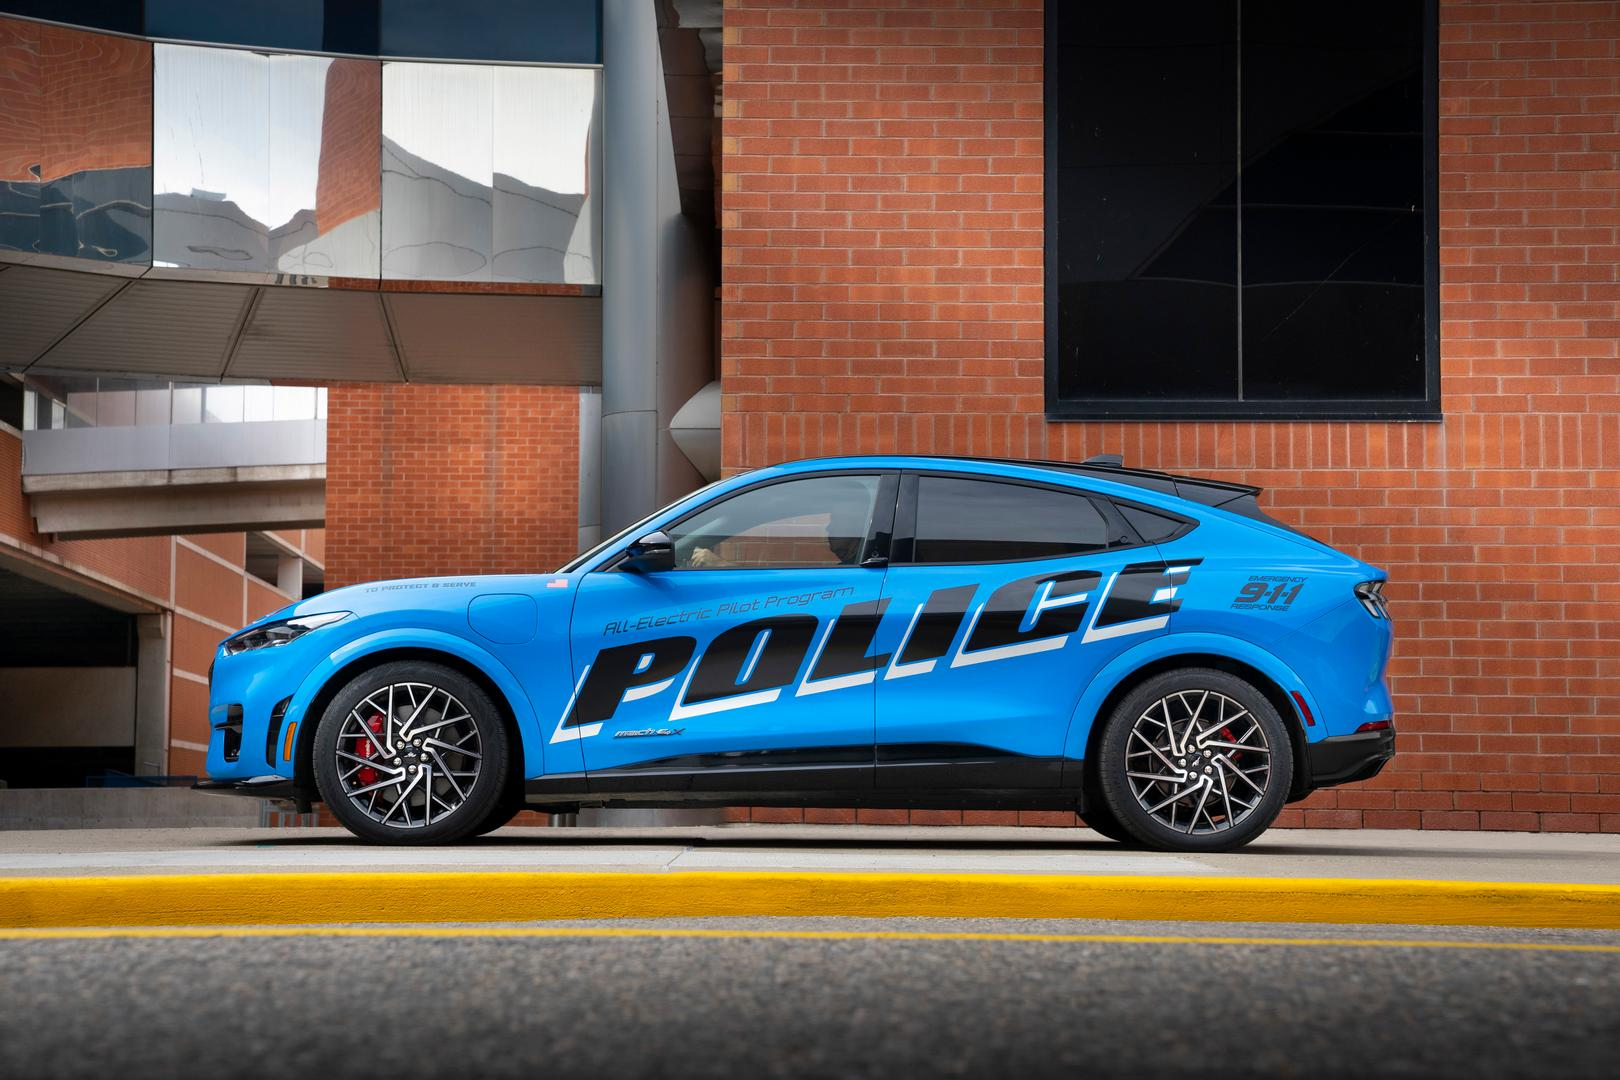 Ford Mustang Mach E Police side